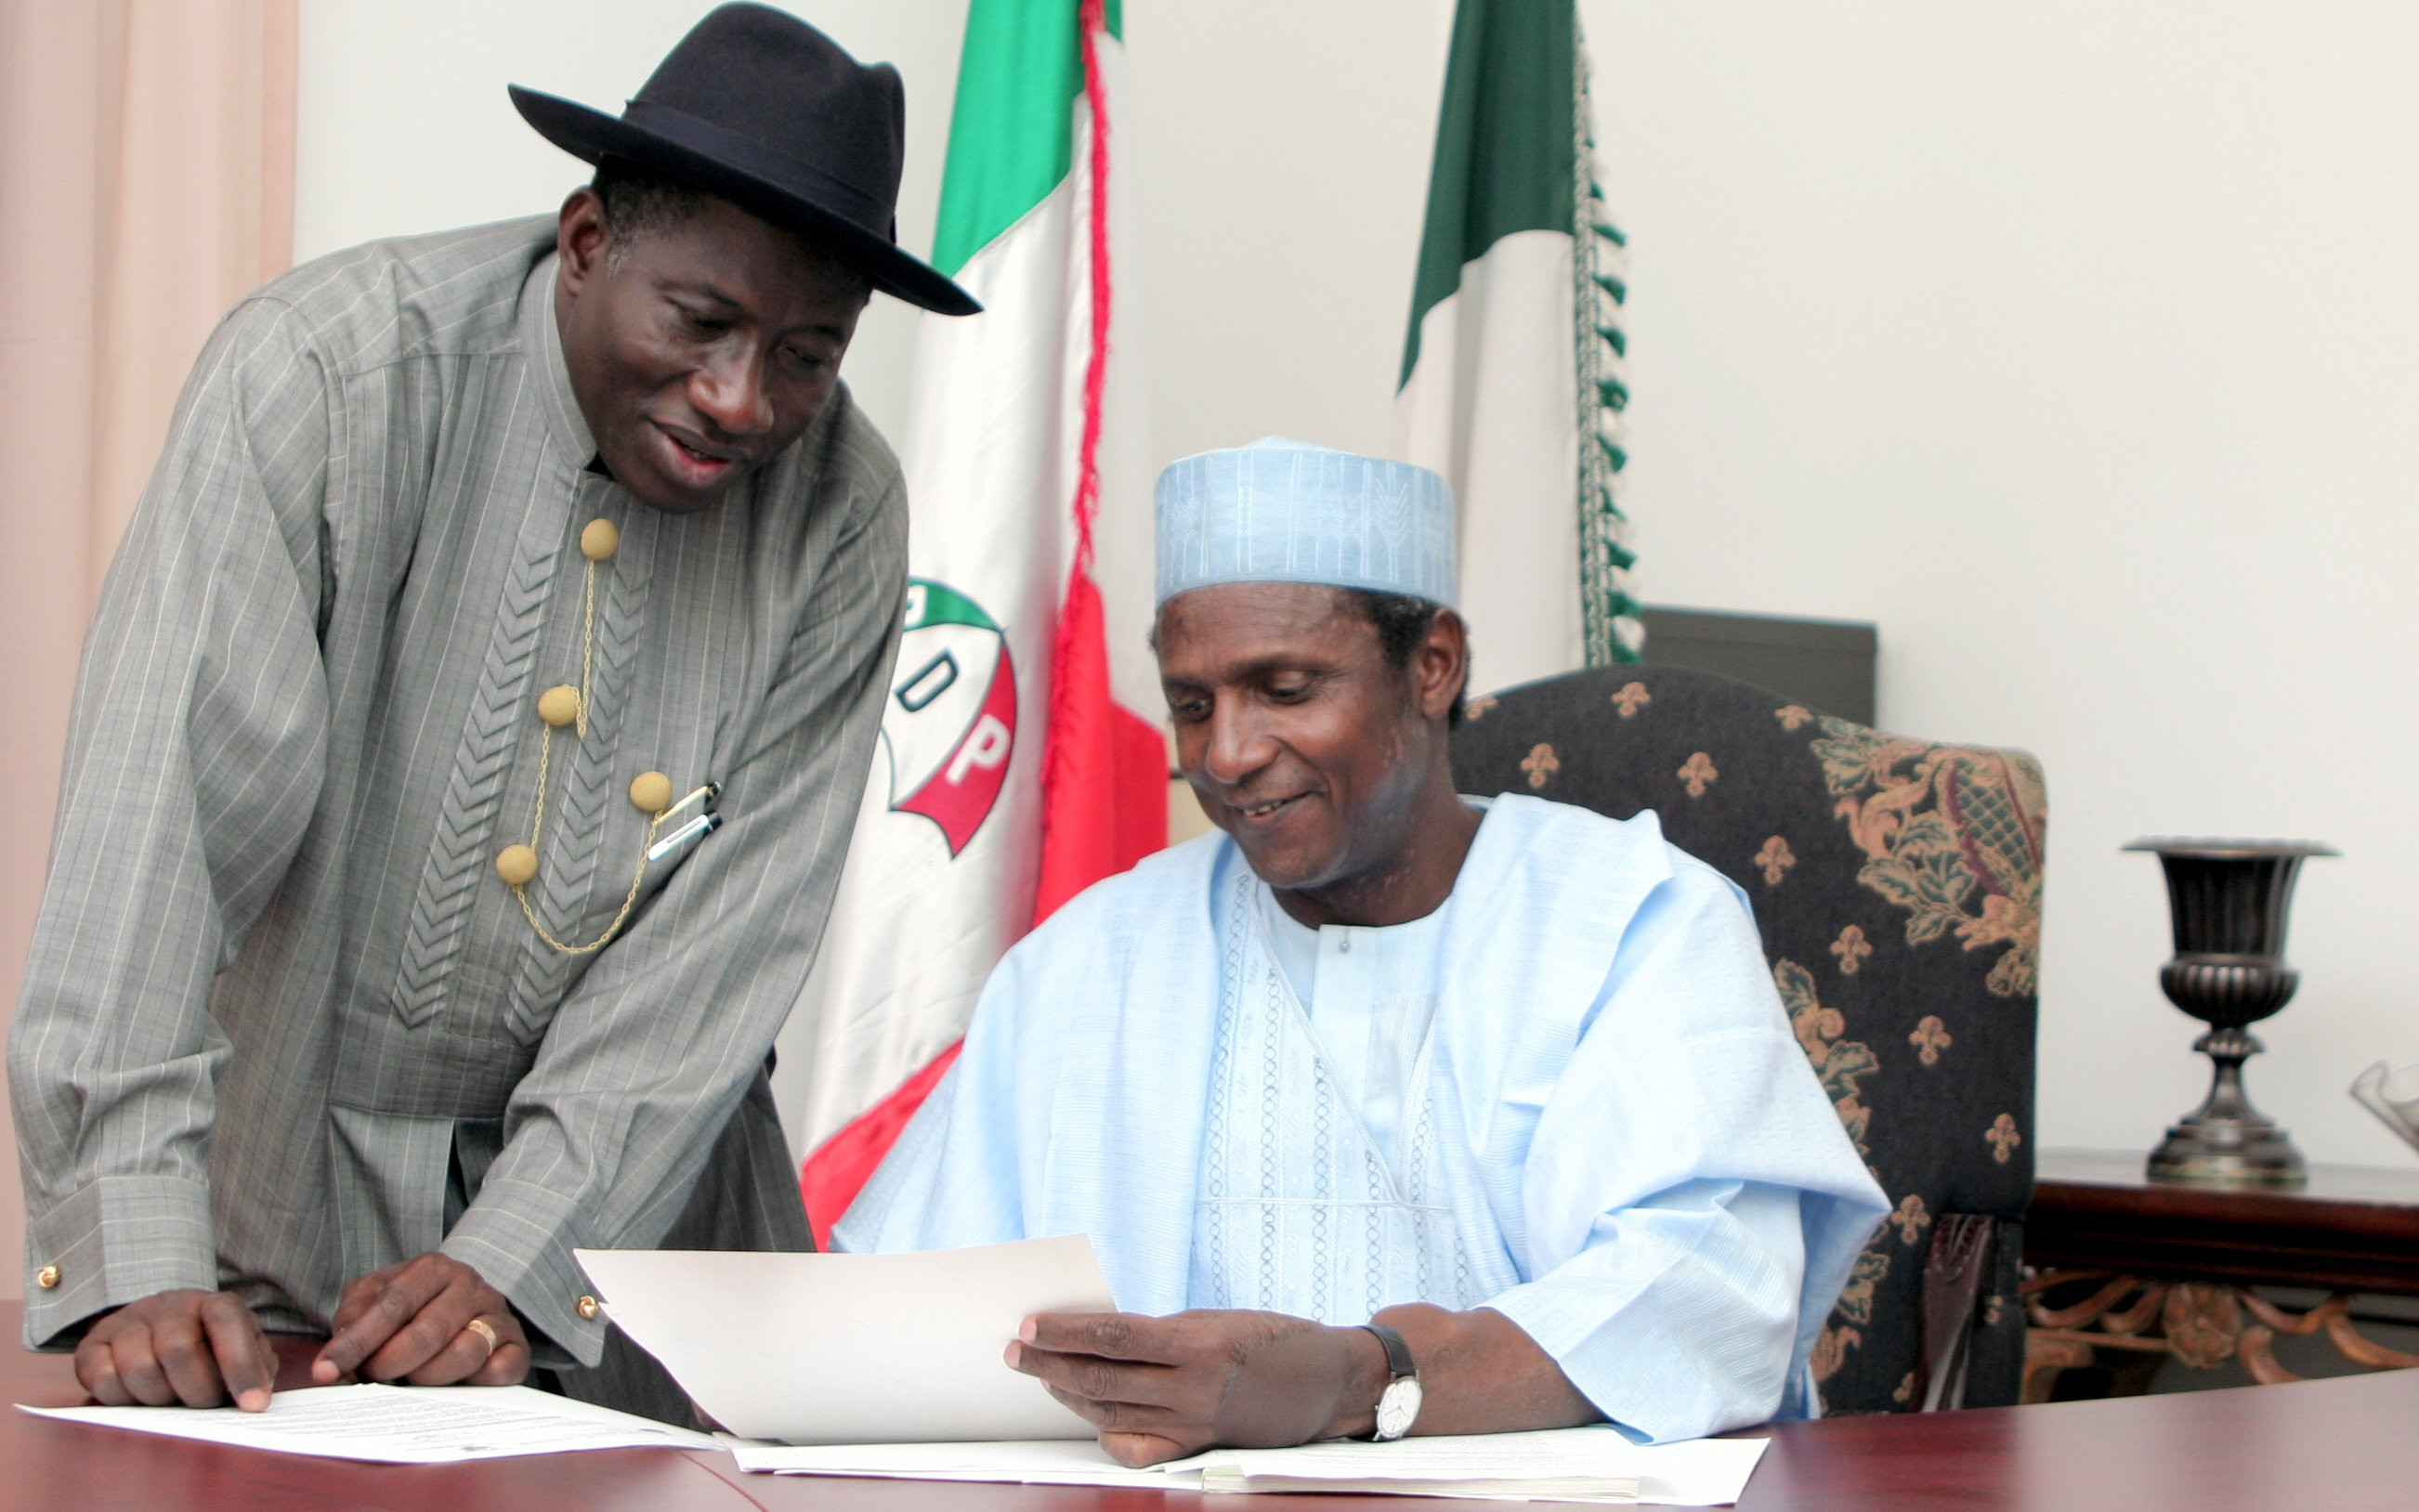 Goodluck Jonathan pays tribute to ex-president Umaru Musa Yar'Adua who died 9-years ago